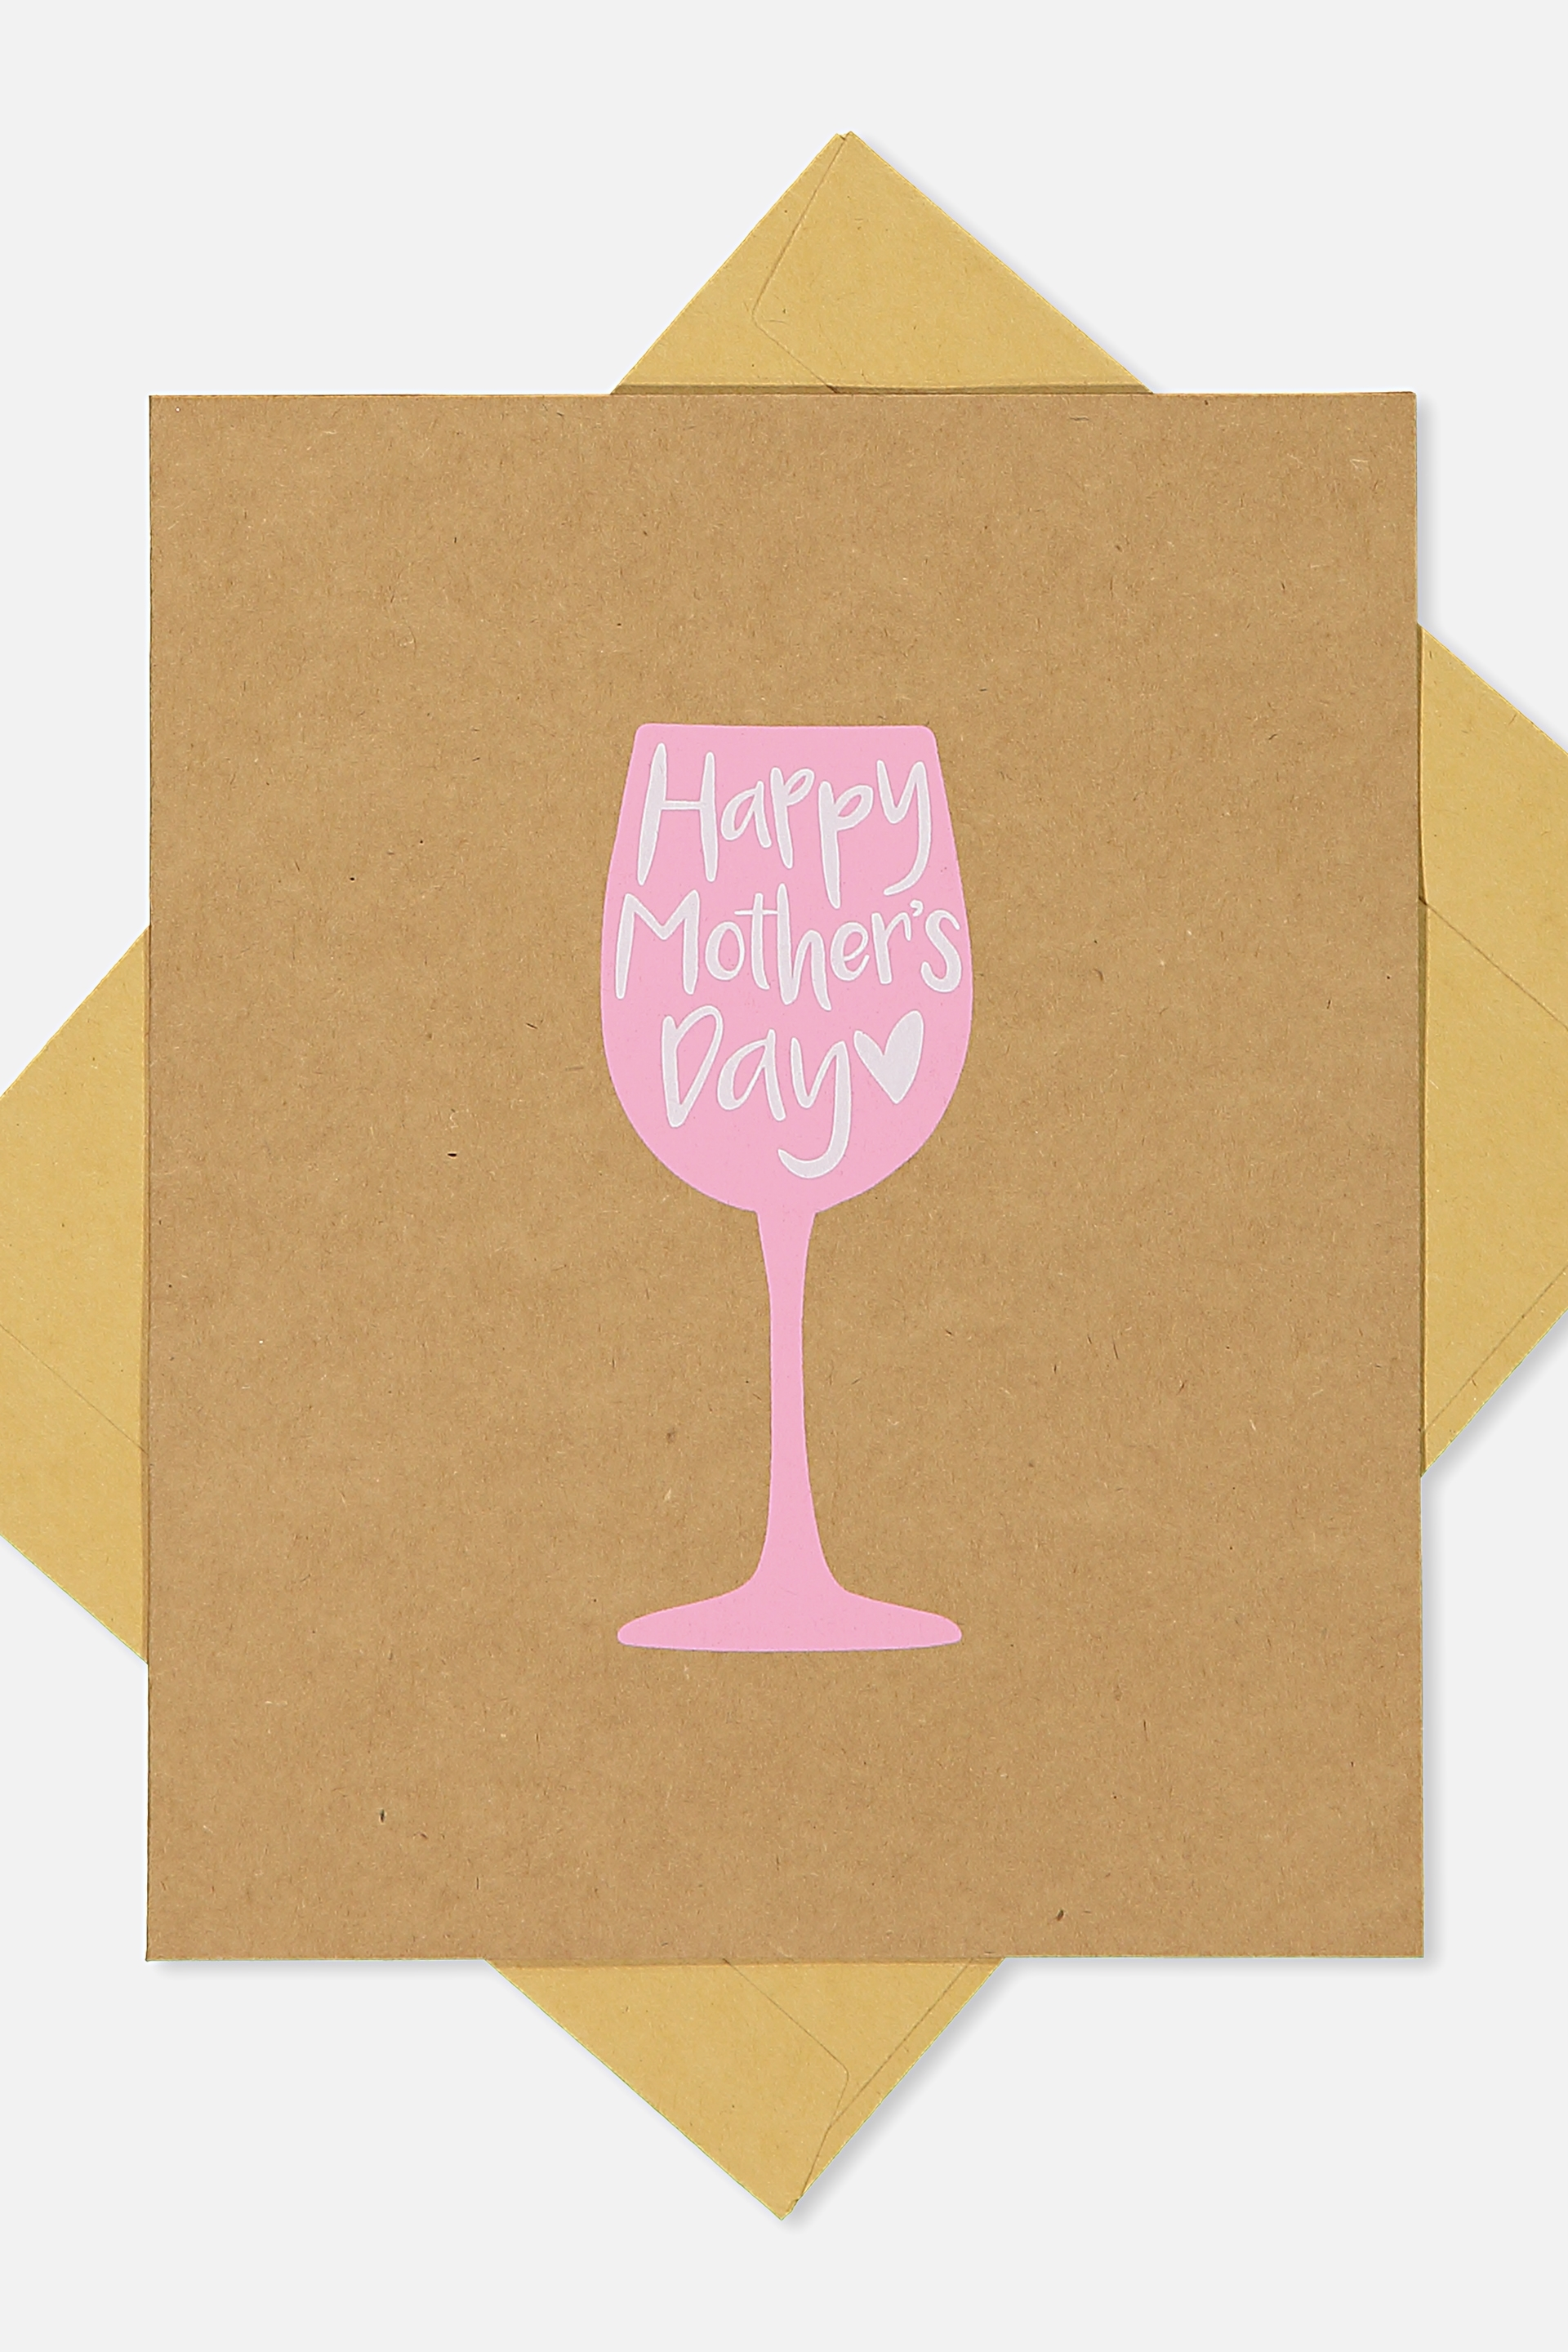 Typo - Mothers Day Cards 2018 - Mothers day wine!